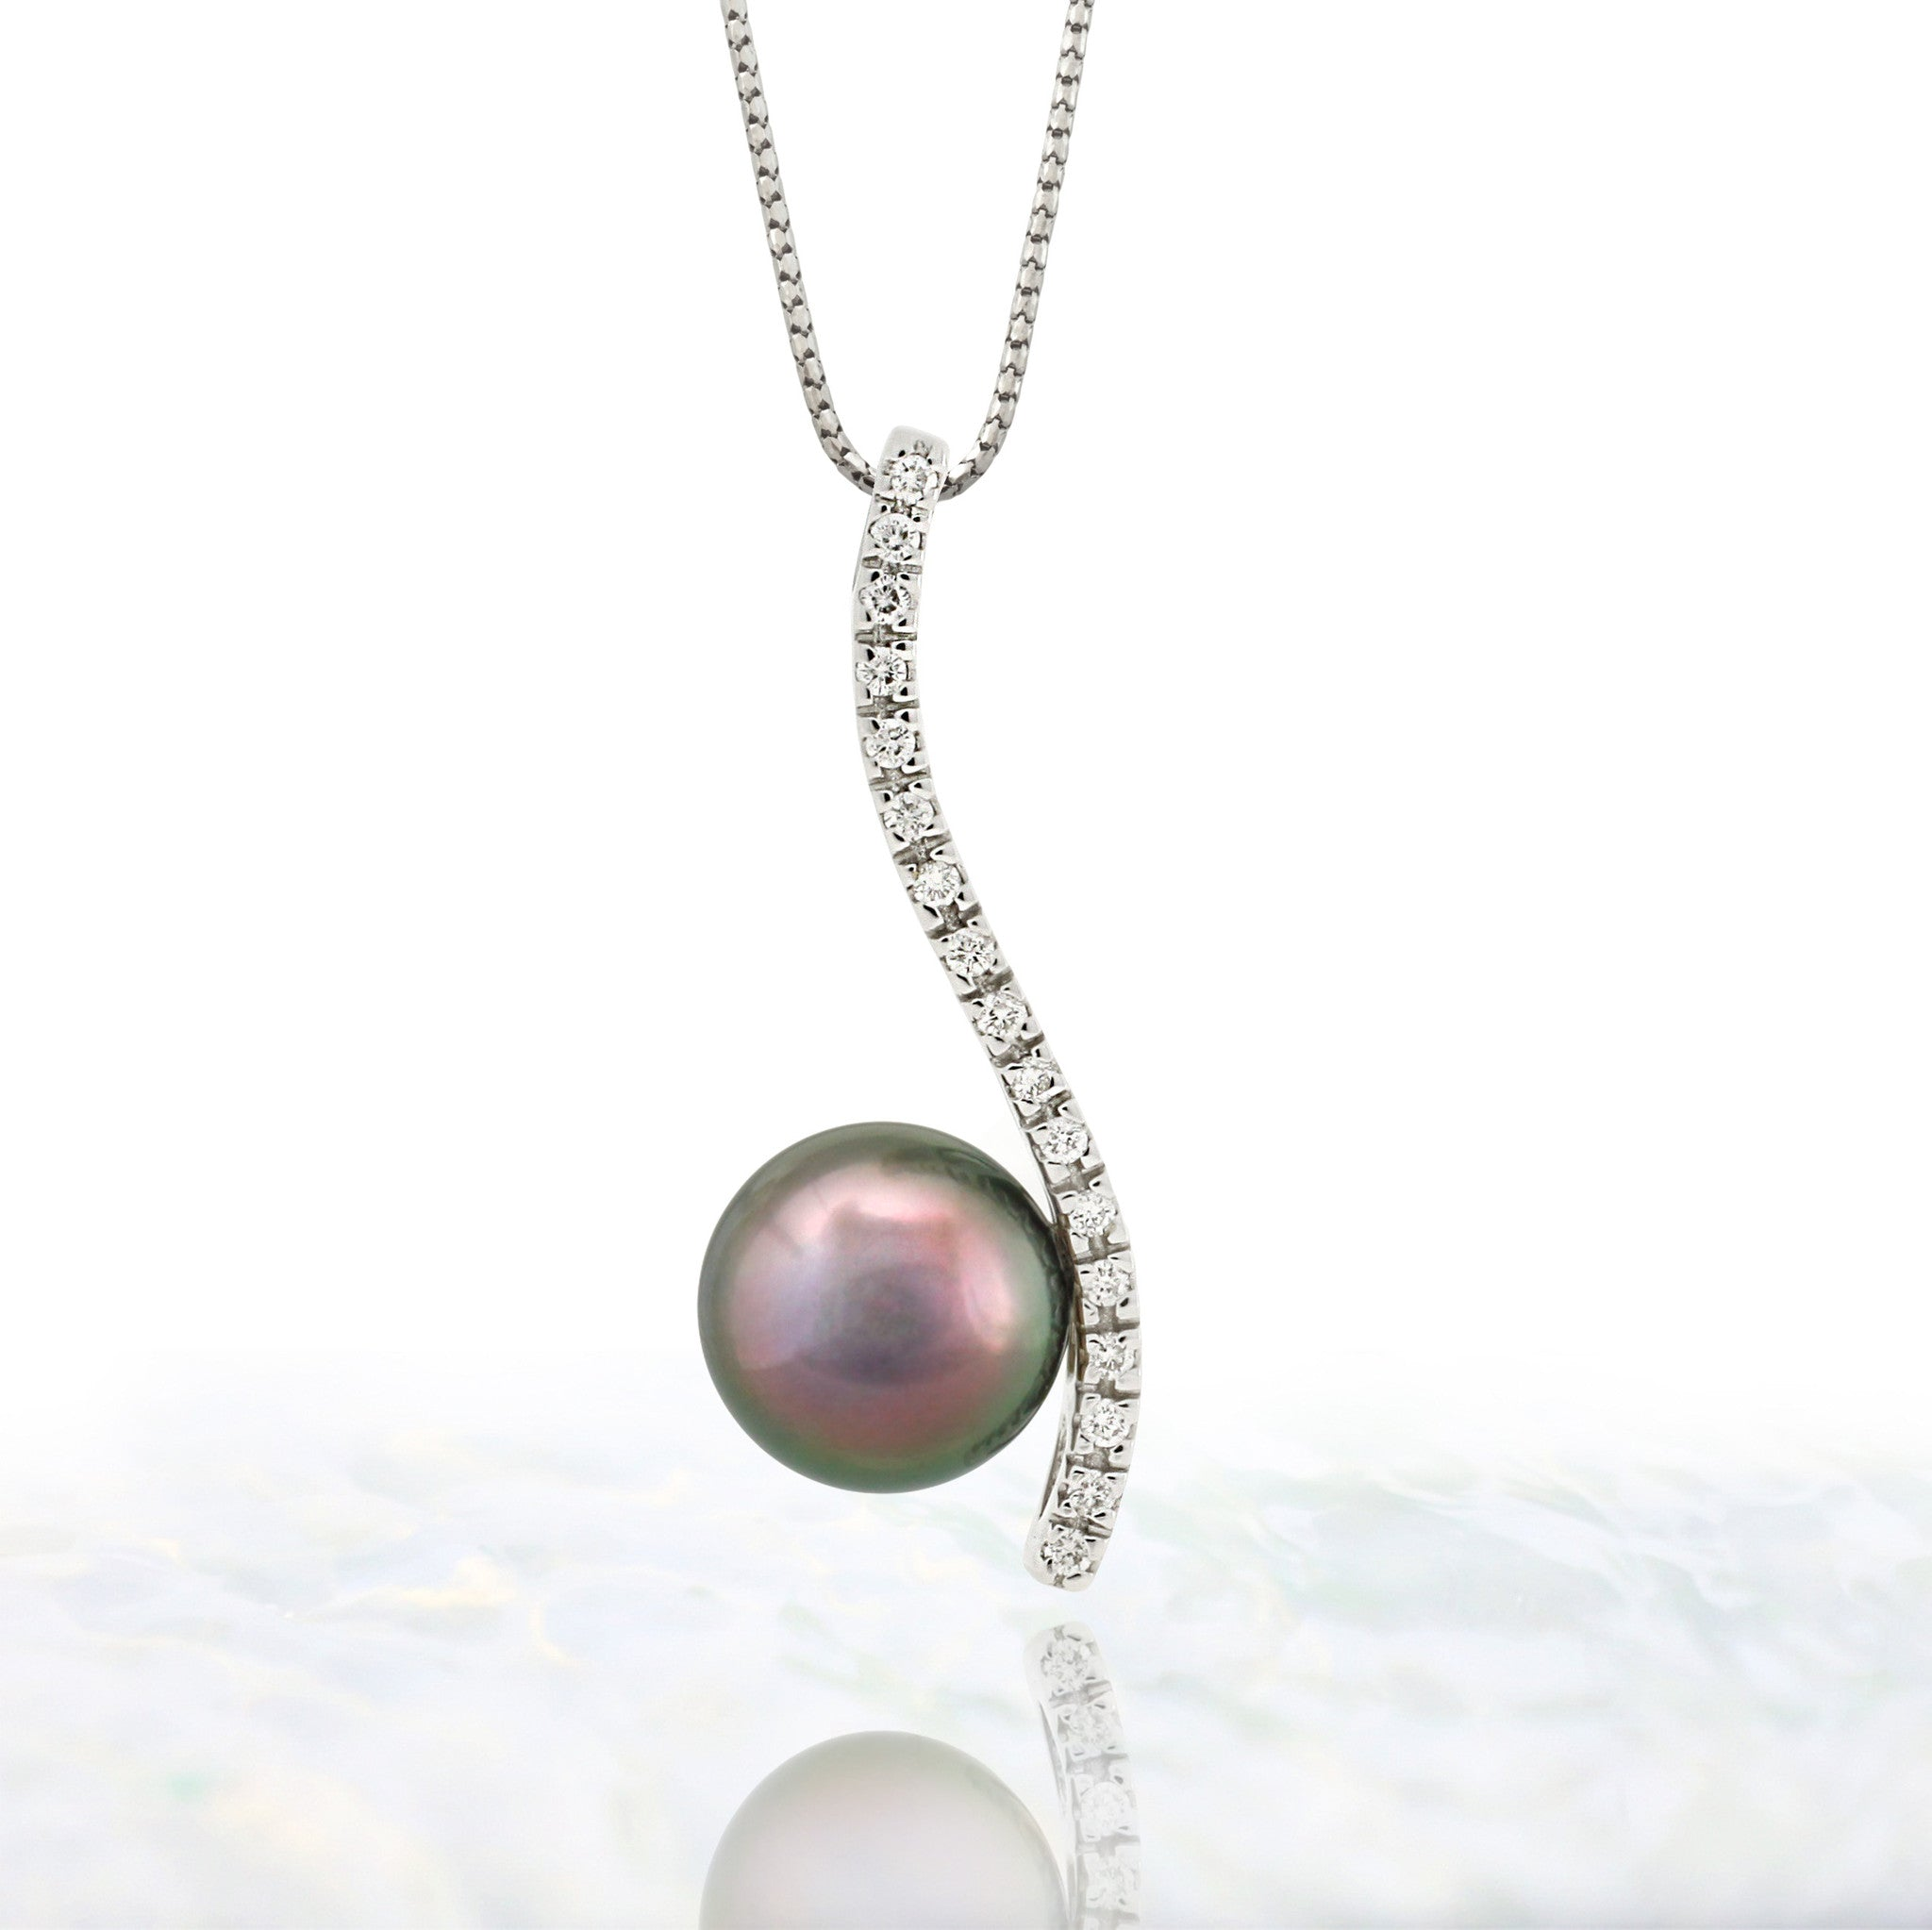 Tahitian pearl pendant in 18k white gold and diamonds - Timeless Elegance - PEWDPE00553